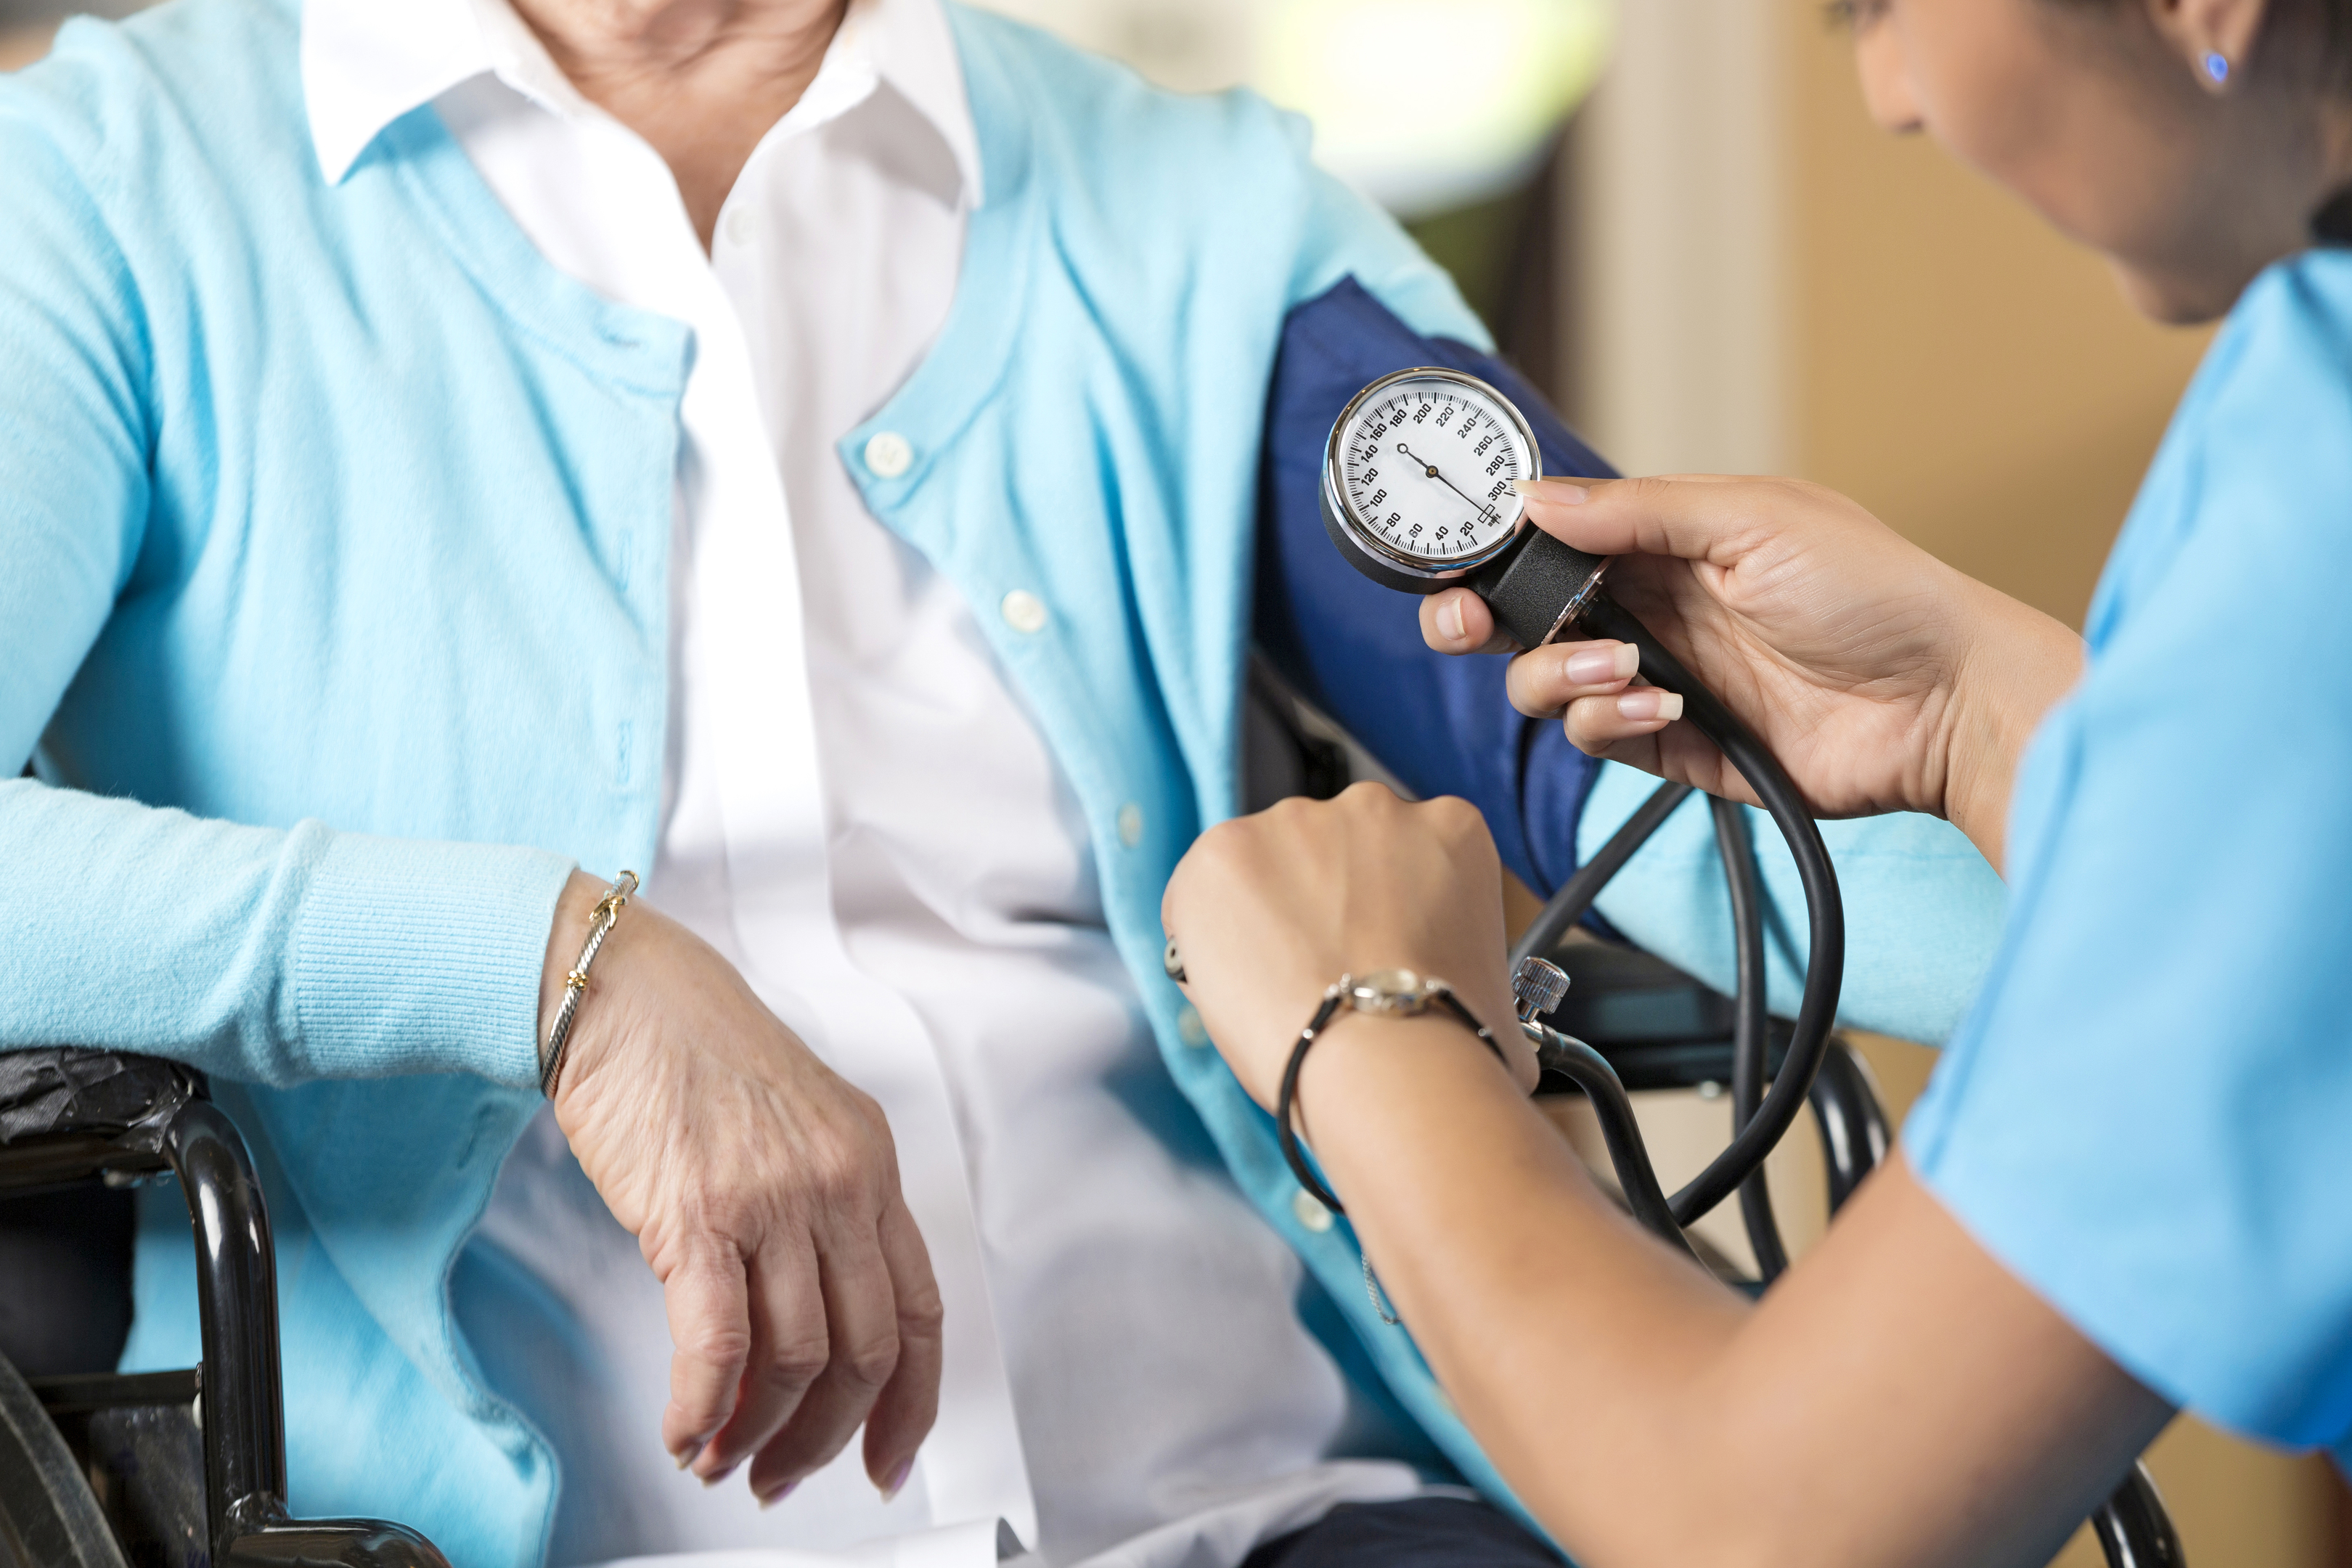 Close up of hands while nurse takes blood pressure of the woman sitting in the wheelchair in front of hair. Senior caucasian woman and a young hispanic woman. They are indoors, sitting down. The nurse is looking at her watch as she is working. The senior woman is wearing a white shirt with a light blue cardigan on top of it, the nurses scrubs are nearly the same color as the womans cardigan.